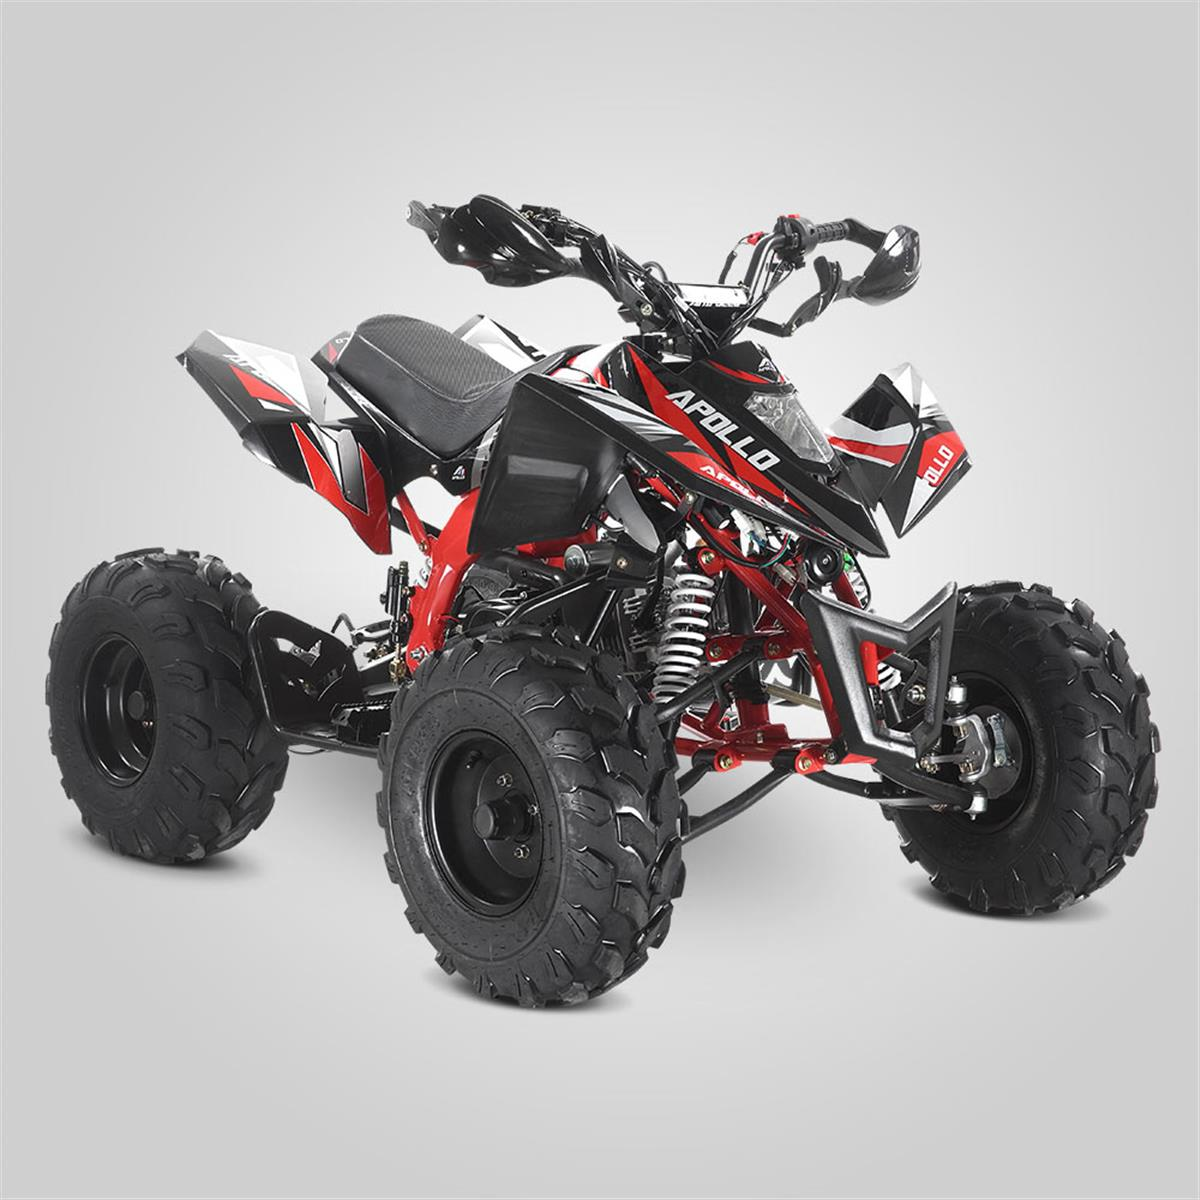 quad enfant 125cc sniper apollo motors smallmx dirt bike pit bike quads minimoto. Black Bedroom Furniture Sets. Home Design Ideas